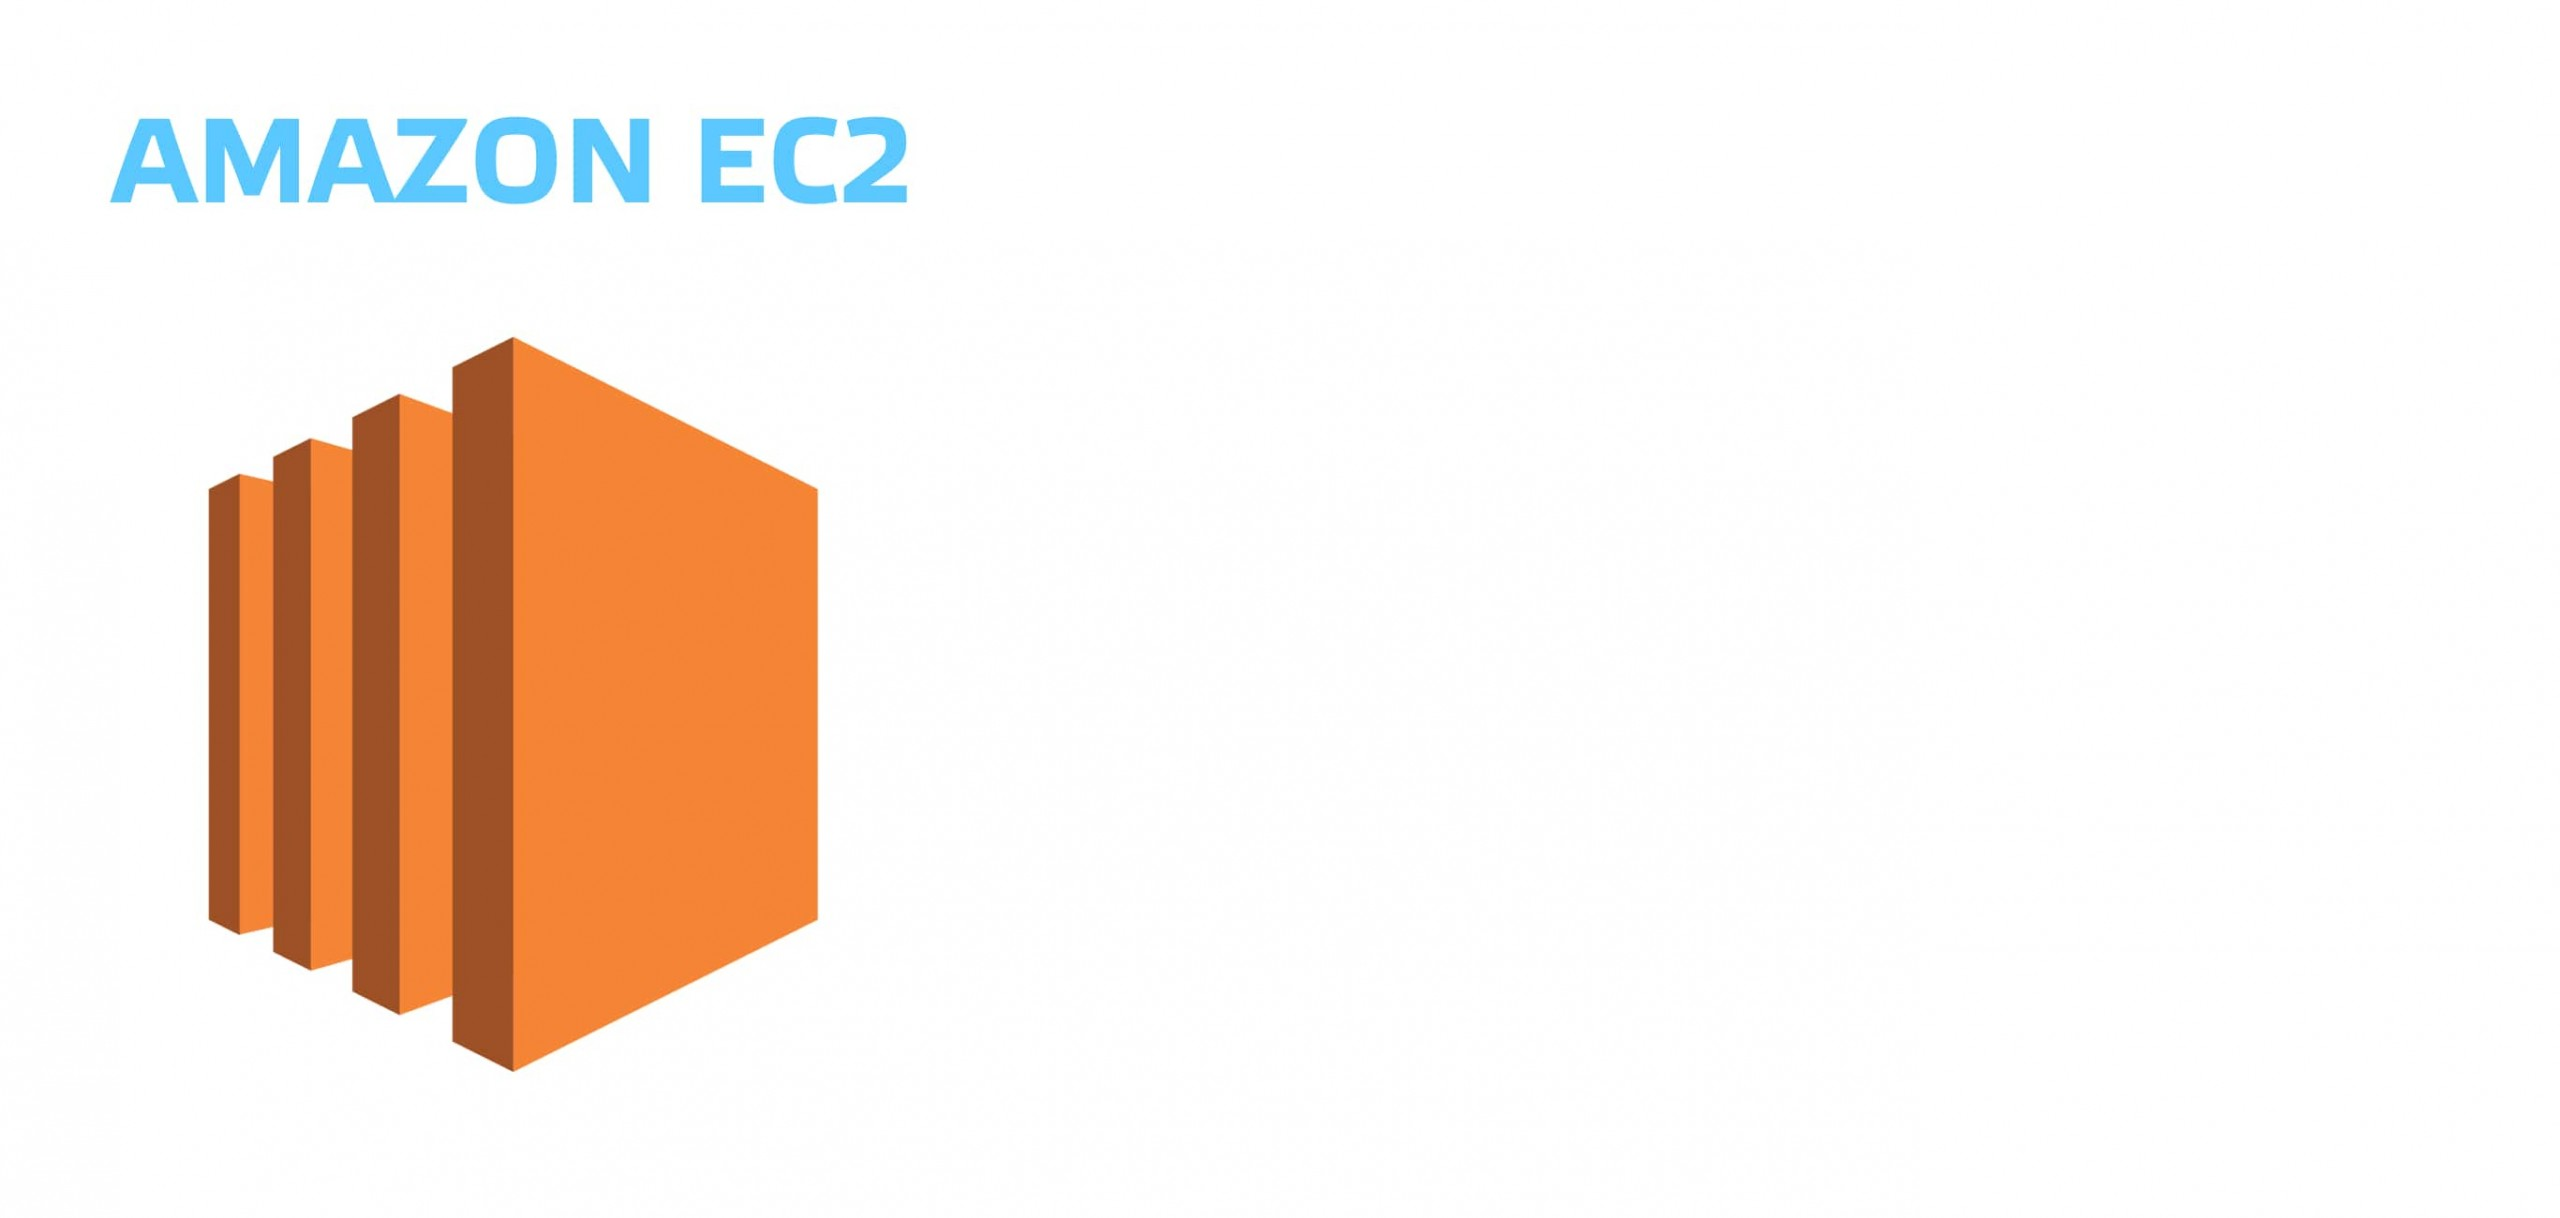 What is an ec2 instance?